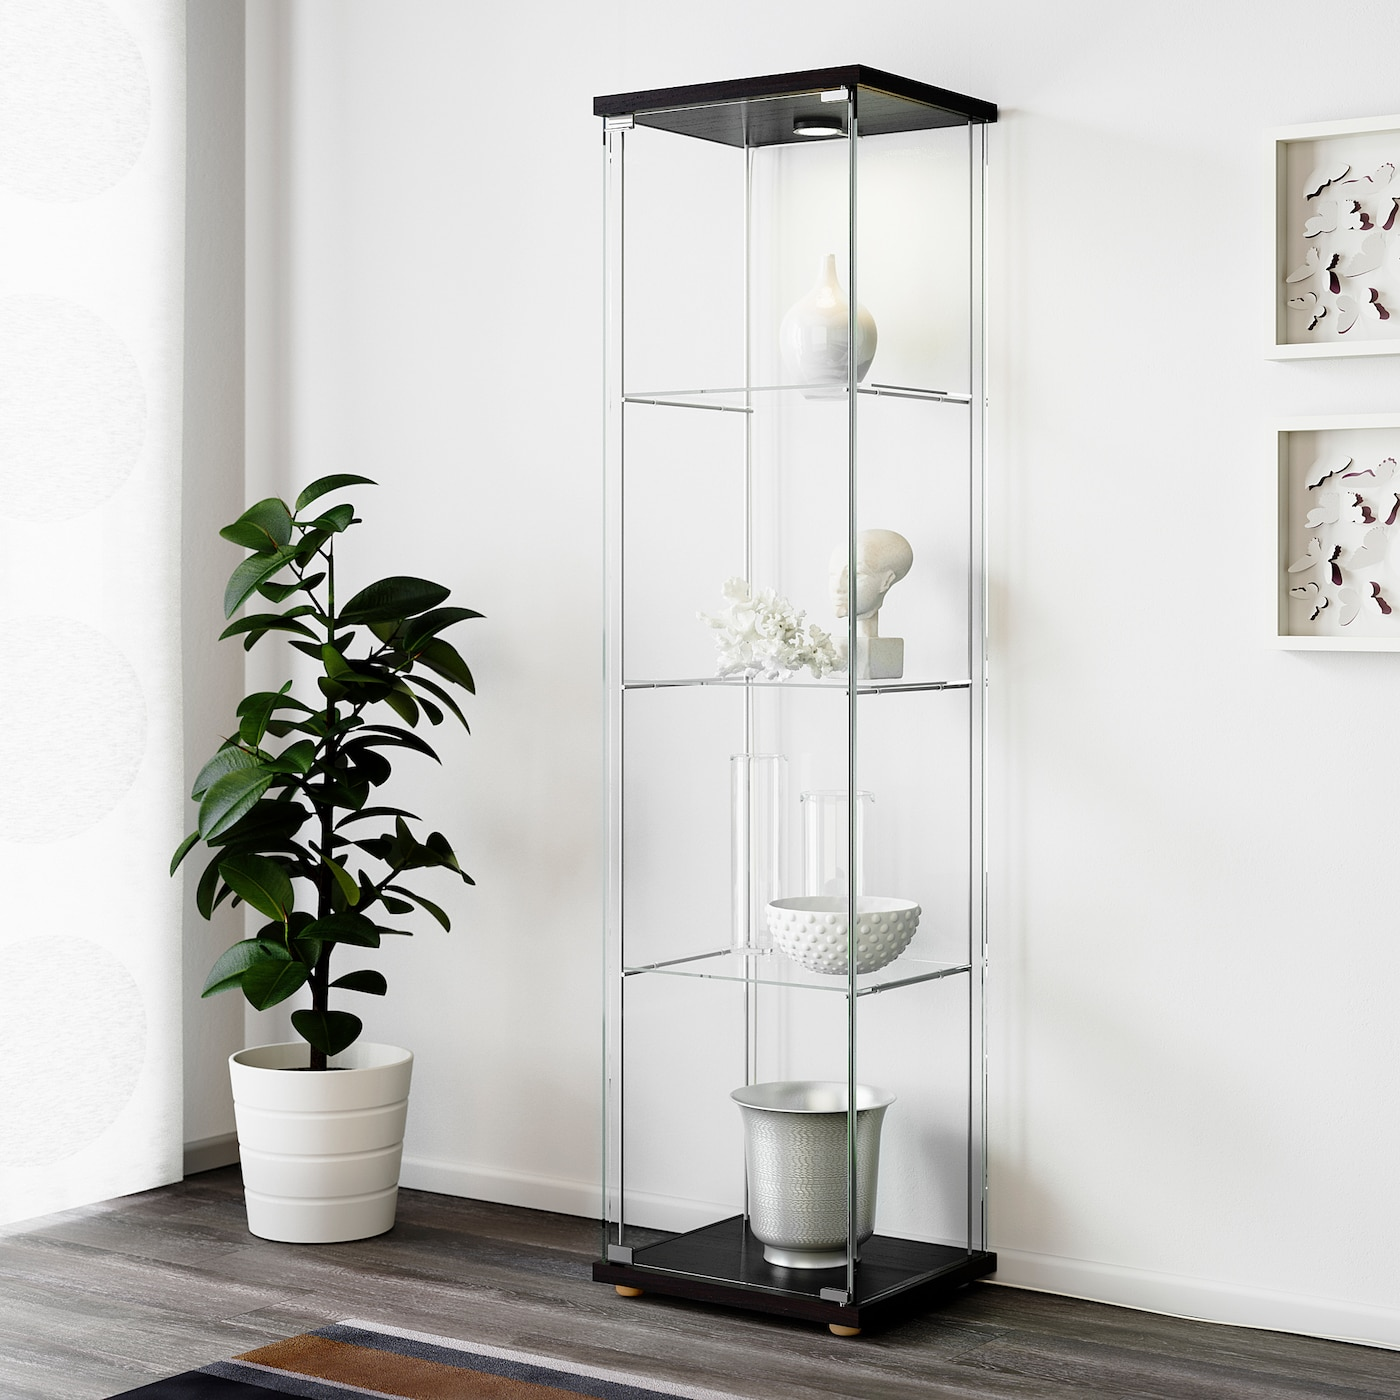 Detolf Glass Door Cabinet Black Brown 16 3 4x64 1 8 Ikea Ideal personalised glass gift idea. detolf glass door cabinet black brown 16 3 4x64 1 8